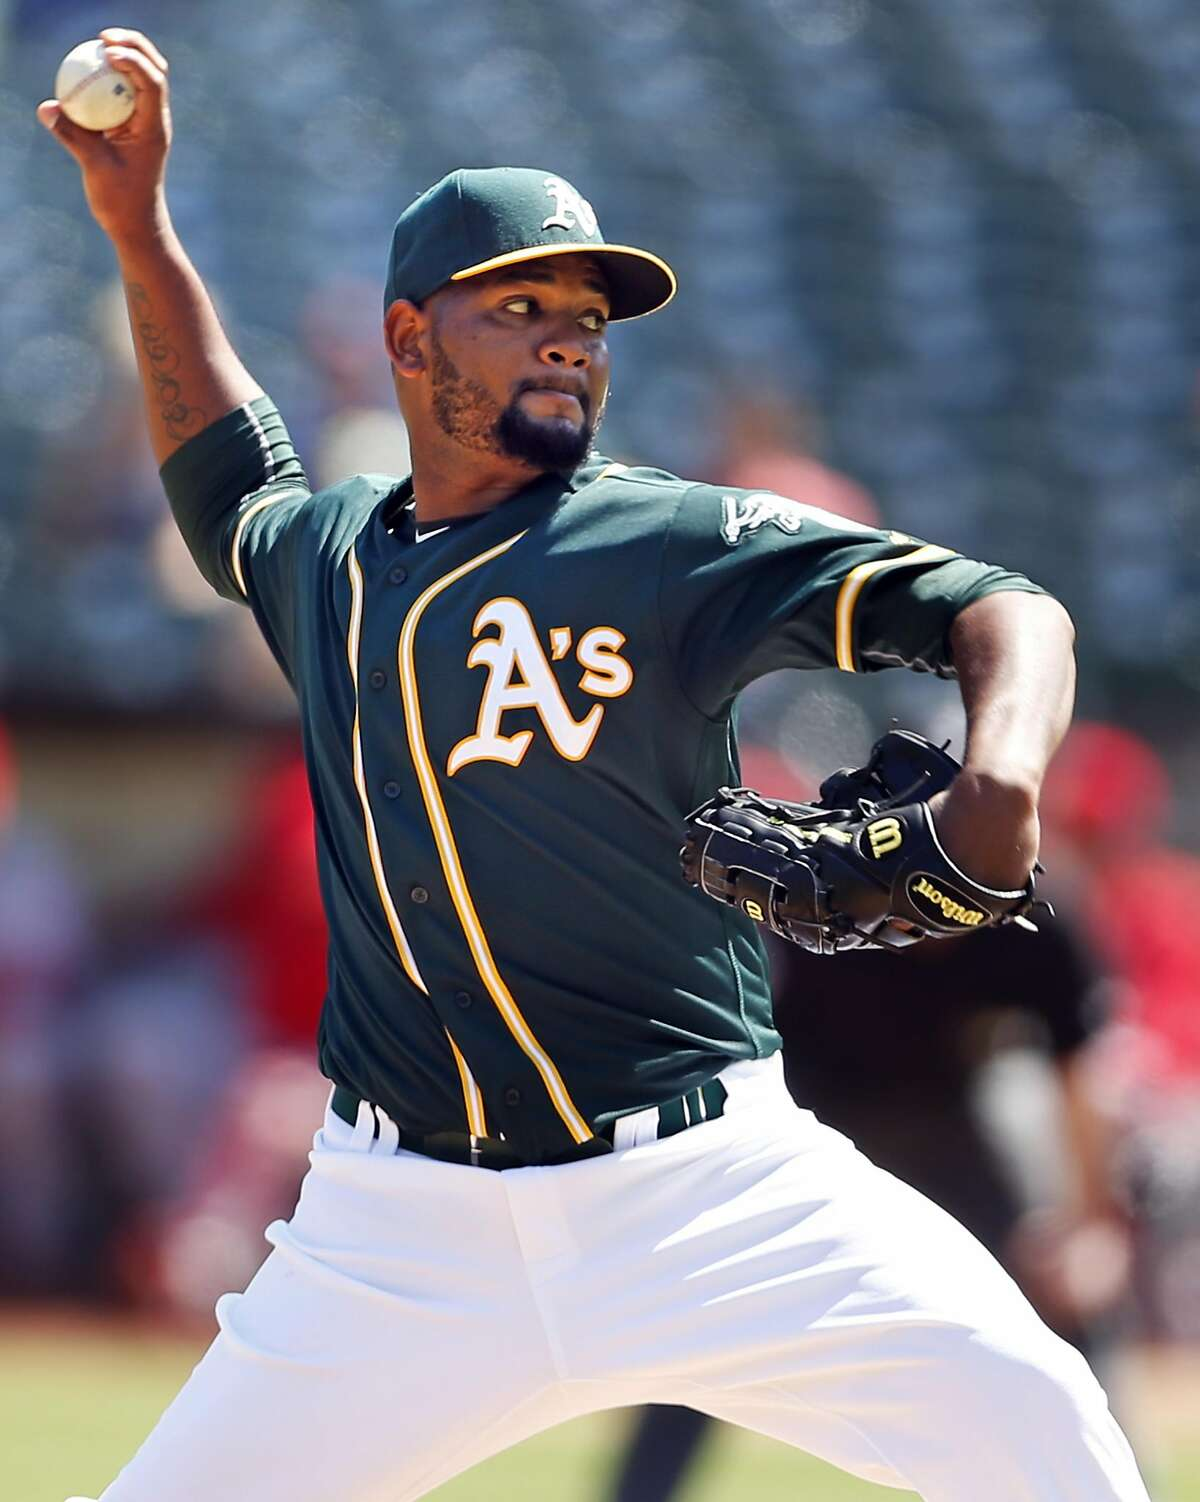 Oakland Athletics' Raul Alcantara delivers in 1st inning against Los Angeles Angels during MLB game at Oakland Coliseum in Oakland, Calif., on Monday, September 5, 2016.